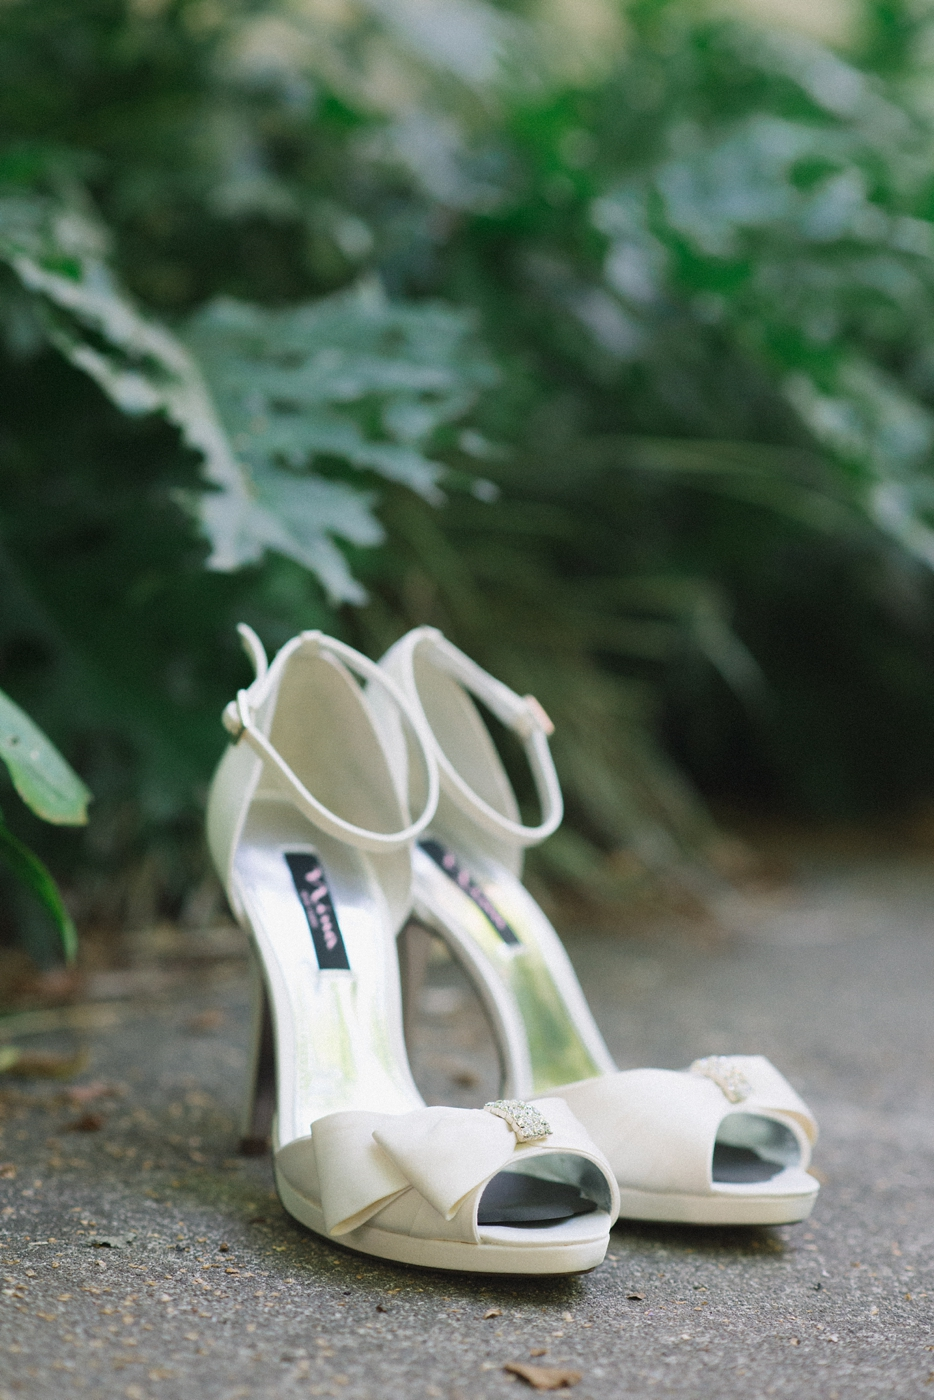 portland-oregon-wedding-photographer-shoes-high-heels-mcmenamins-edgefield-shelley-marie-photo-2